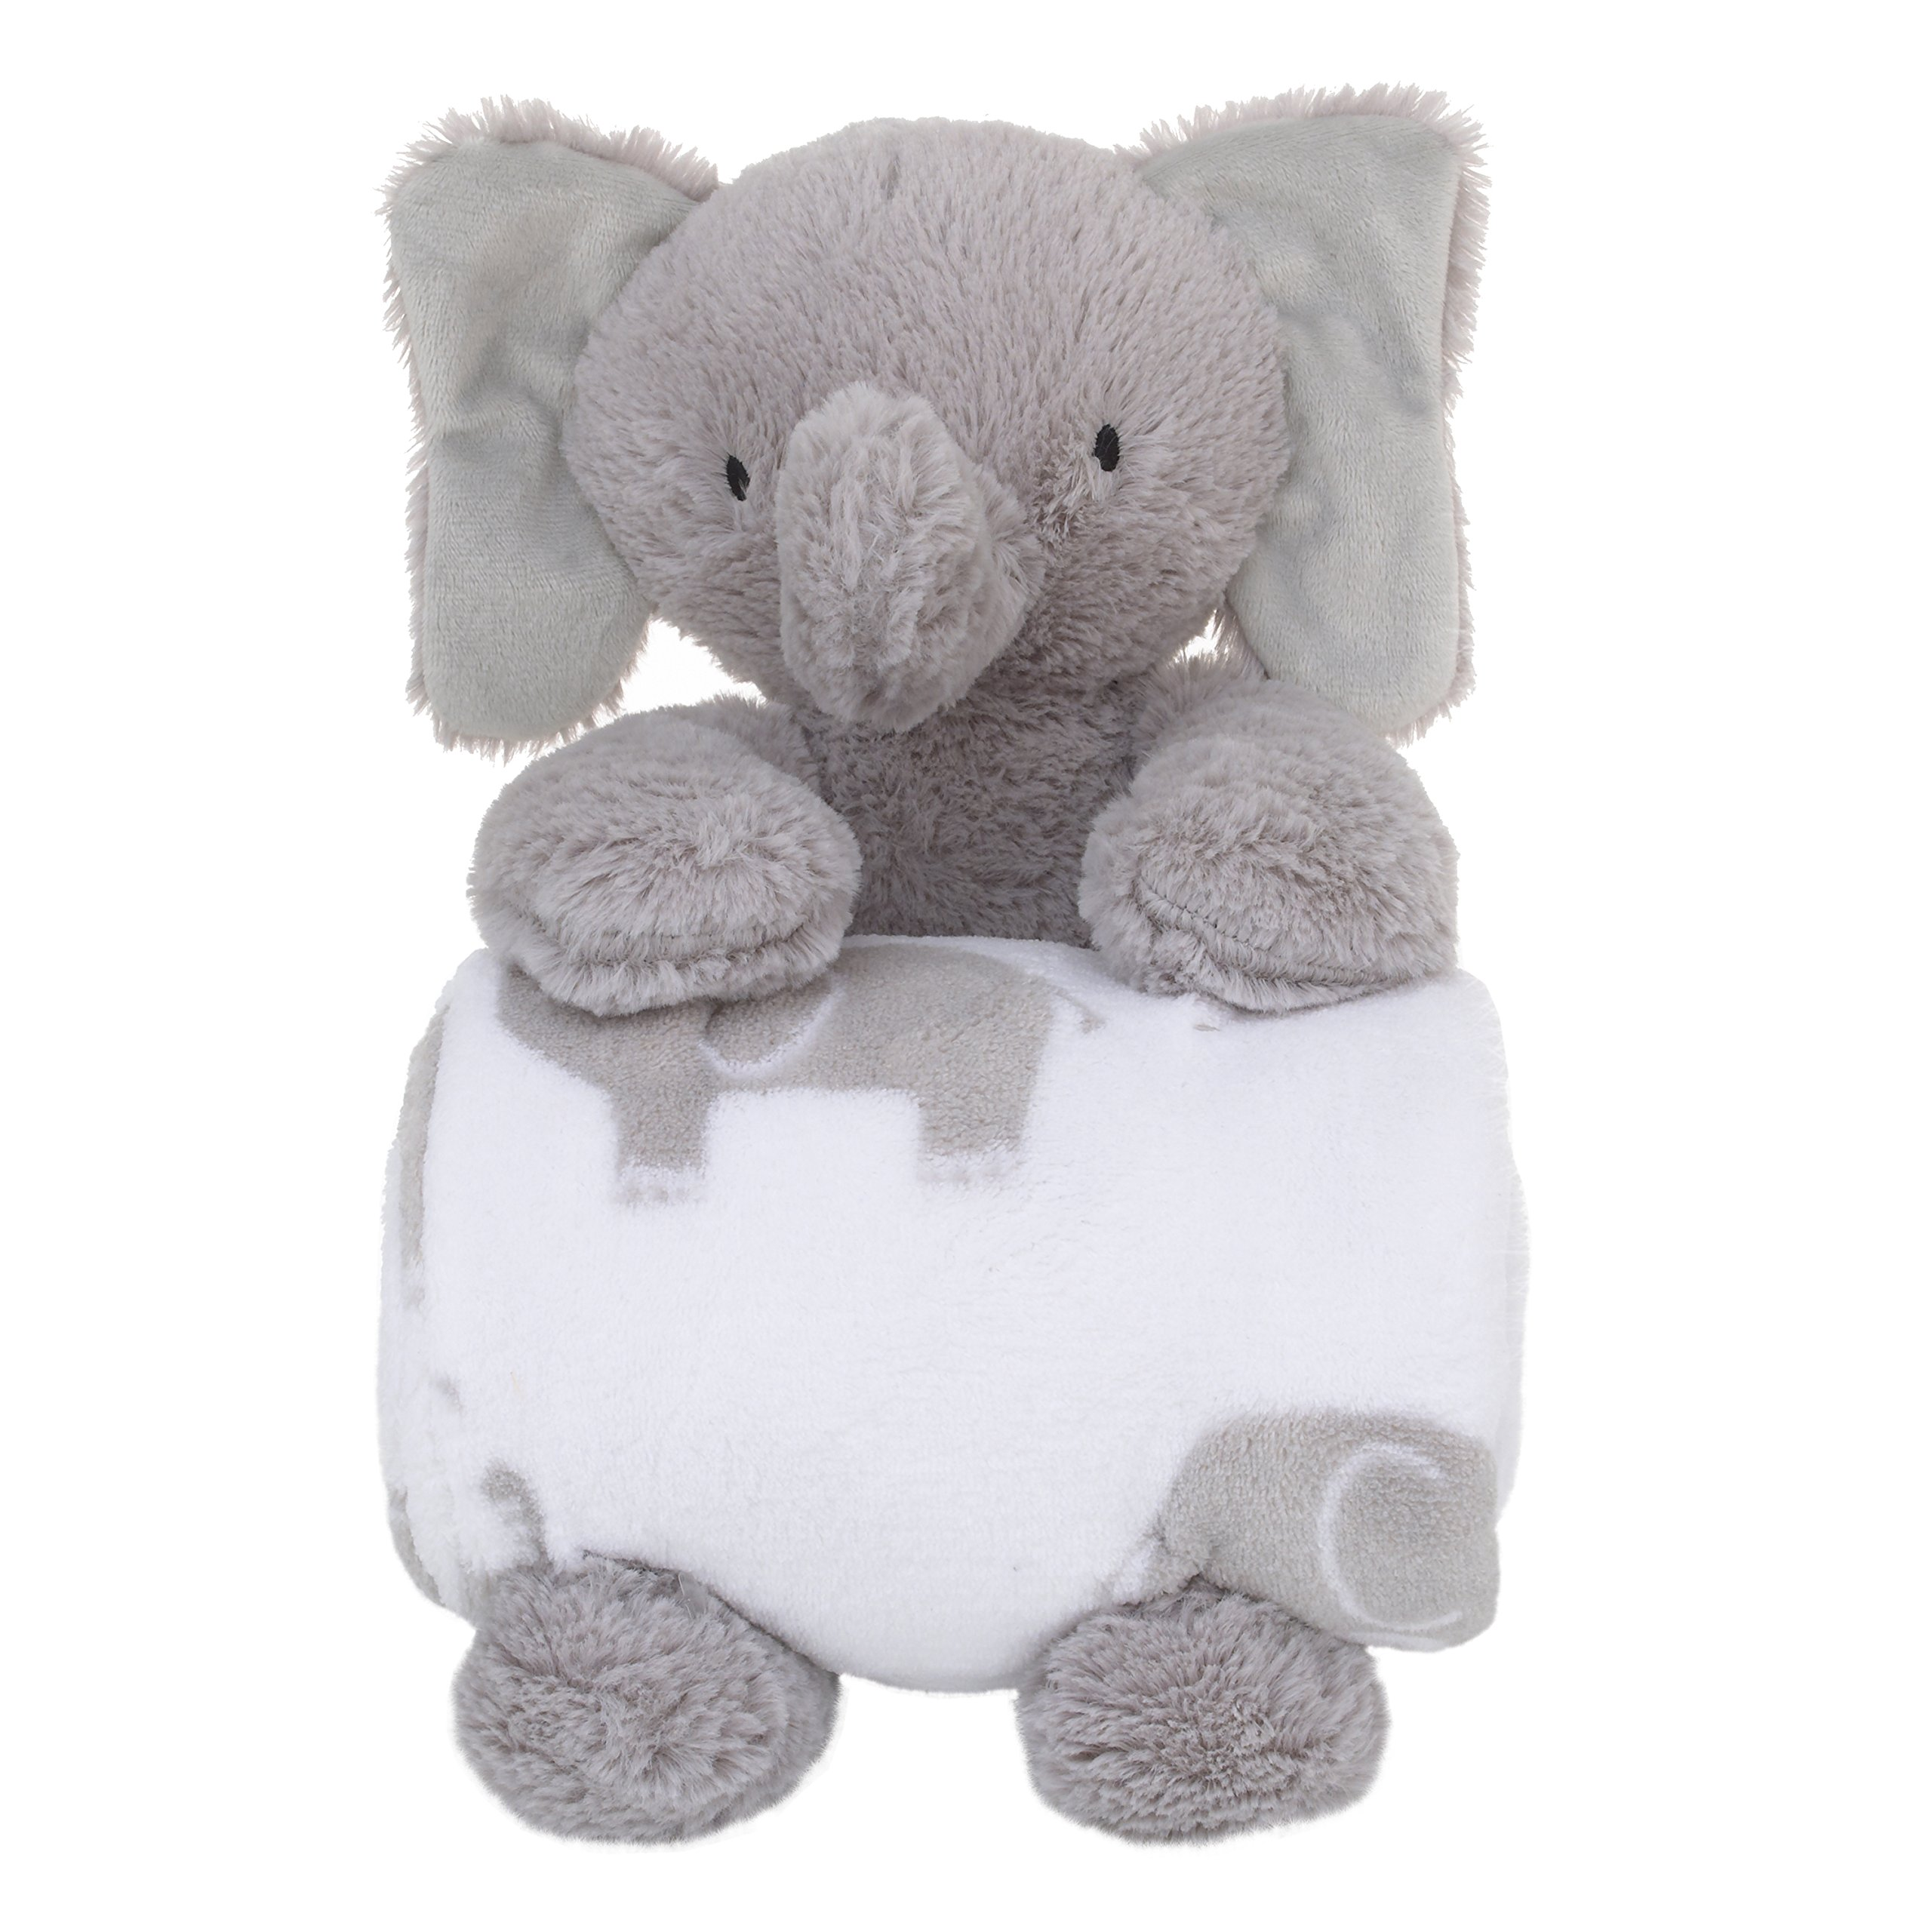 Little Love by NoJo Super Soft Plush and Blanket Elephant, Gray, White Gift Set